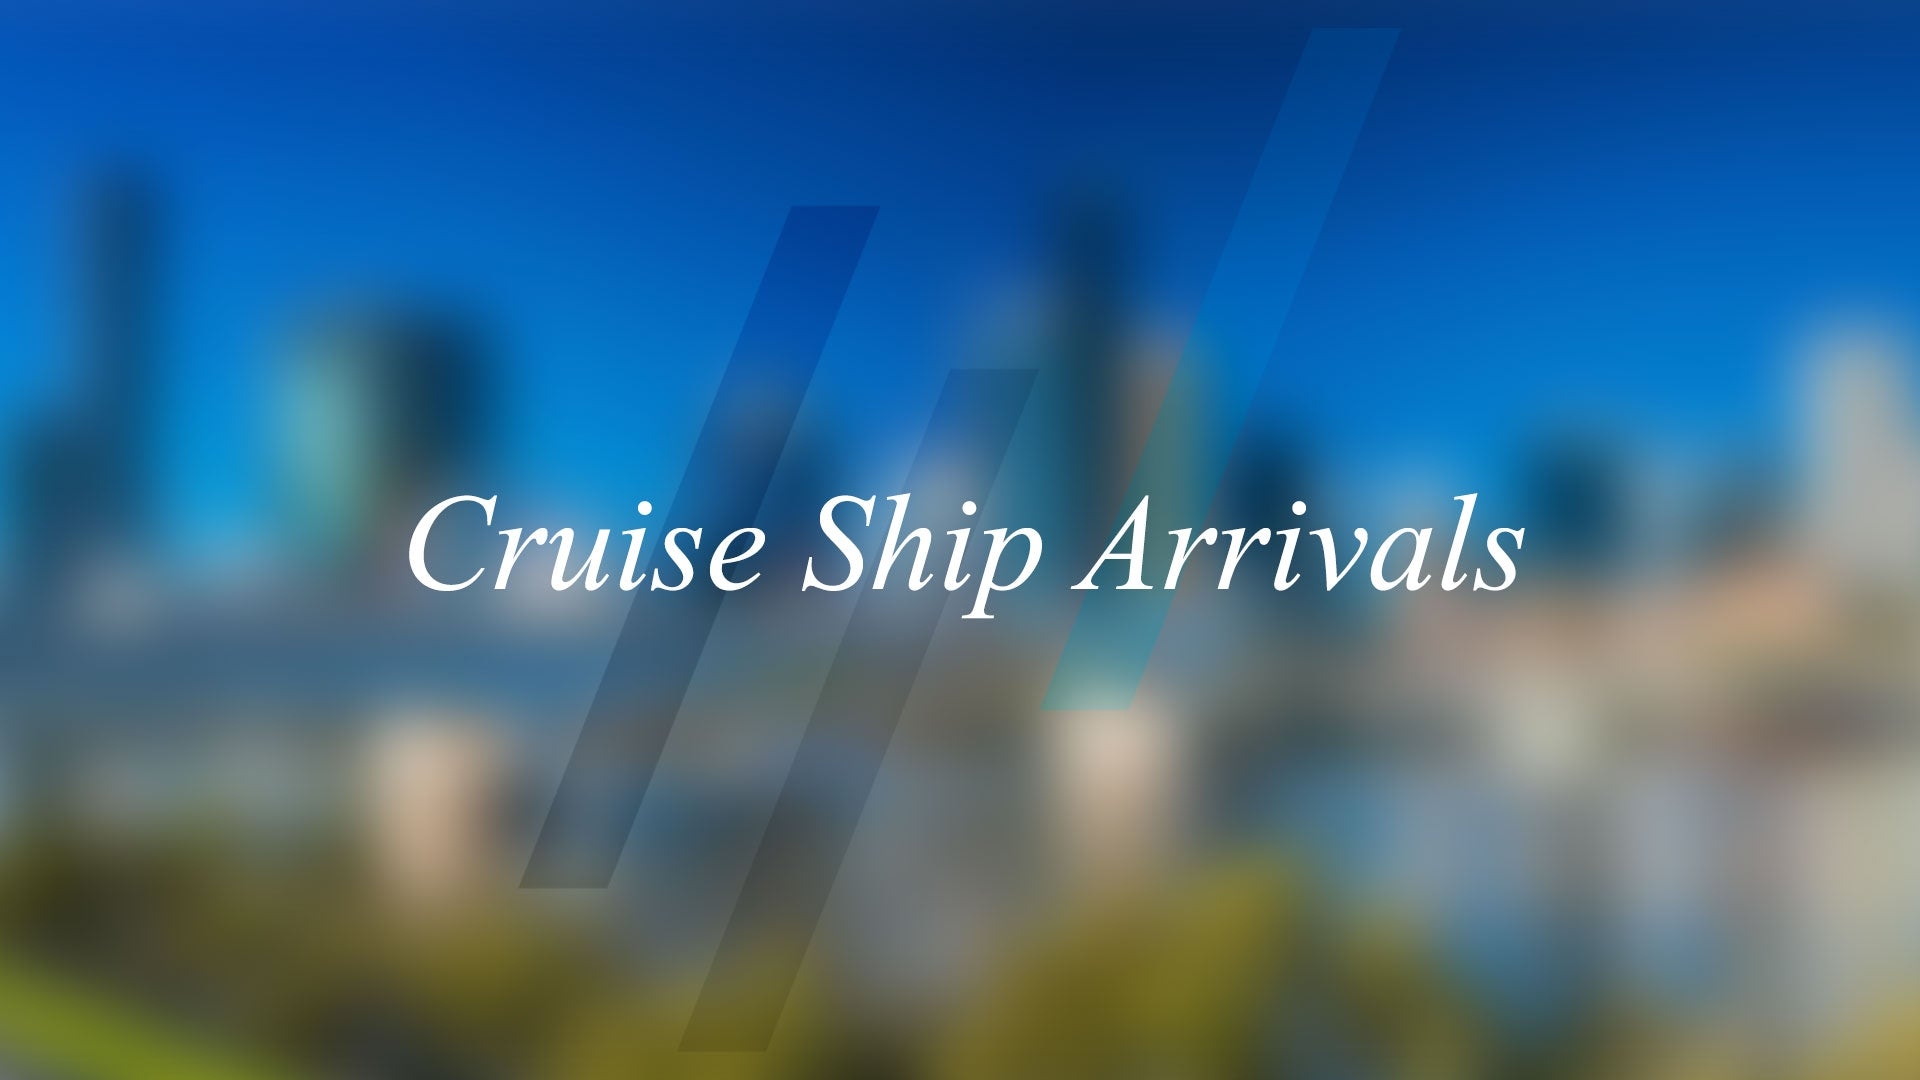 Cruise Ship Arrivals